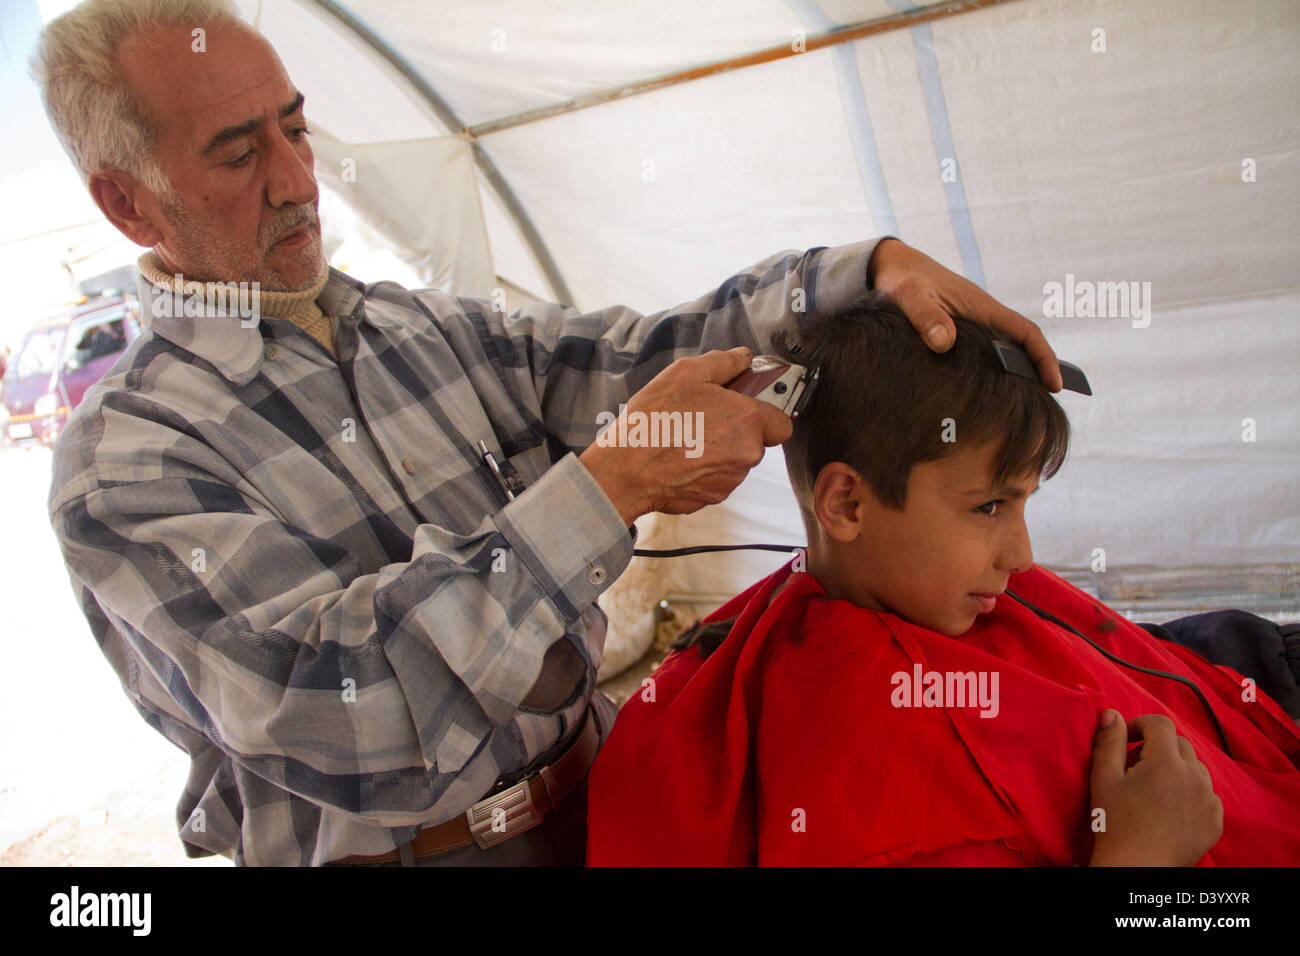 Haircut Shave Stock Photos  Haircut Shave Stock Images  Alamy